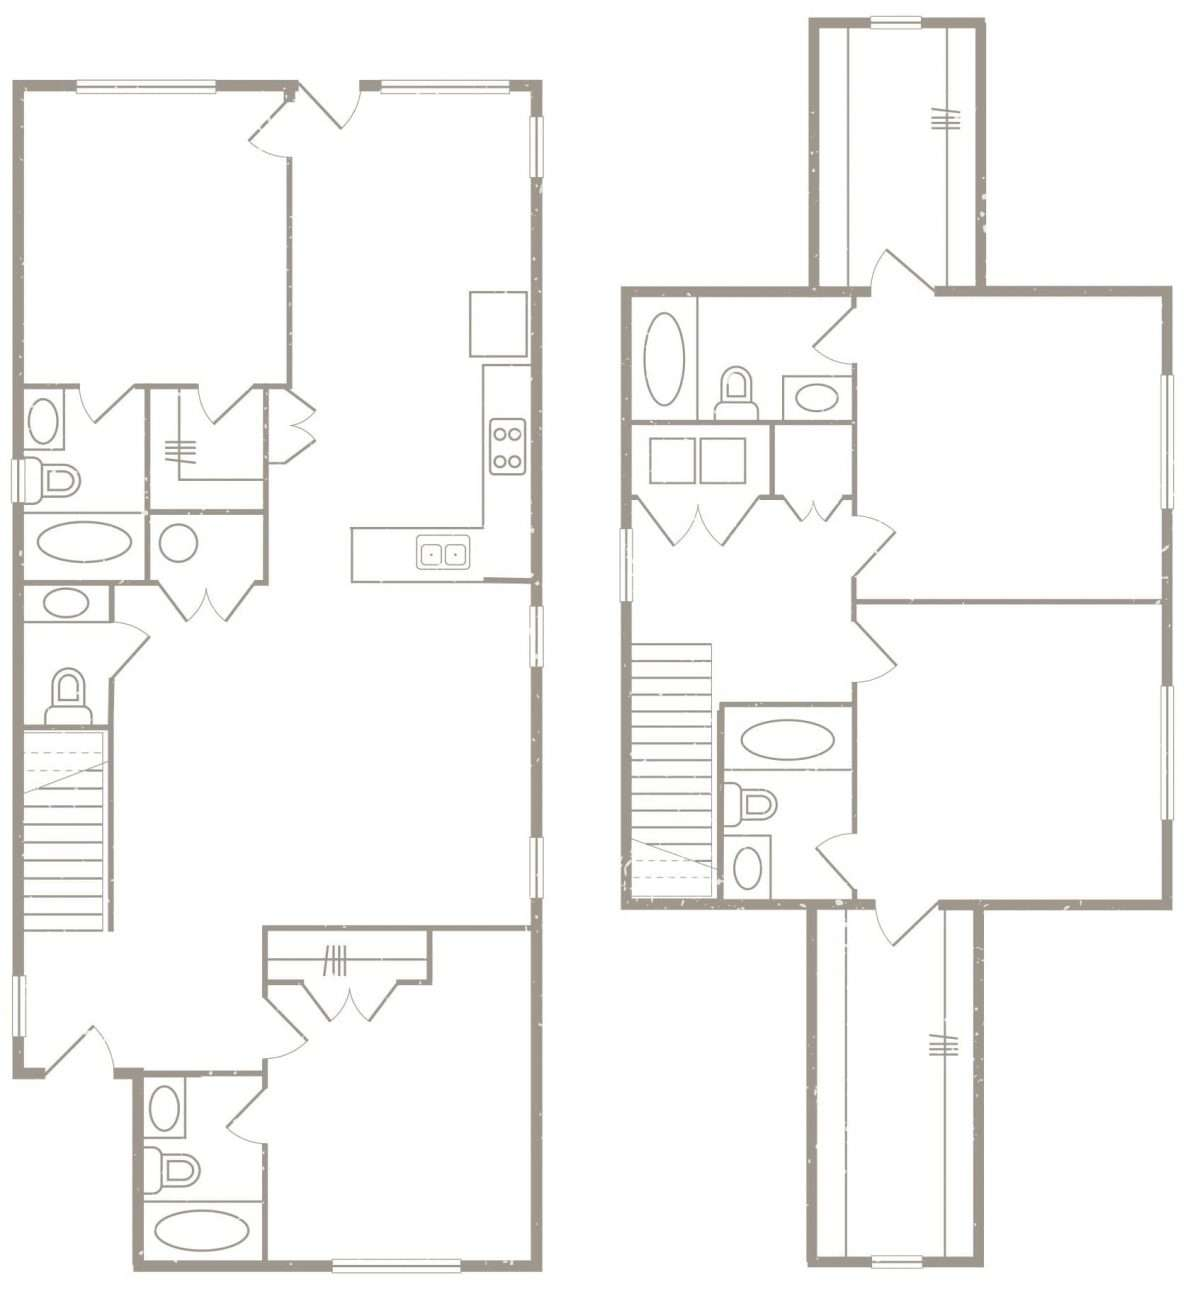 4 Bedroom Floorplan 4